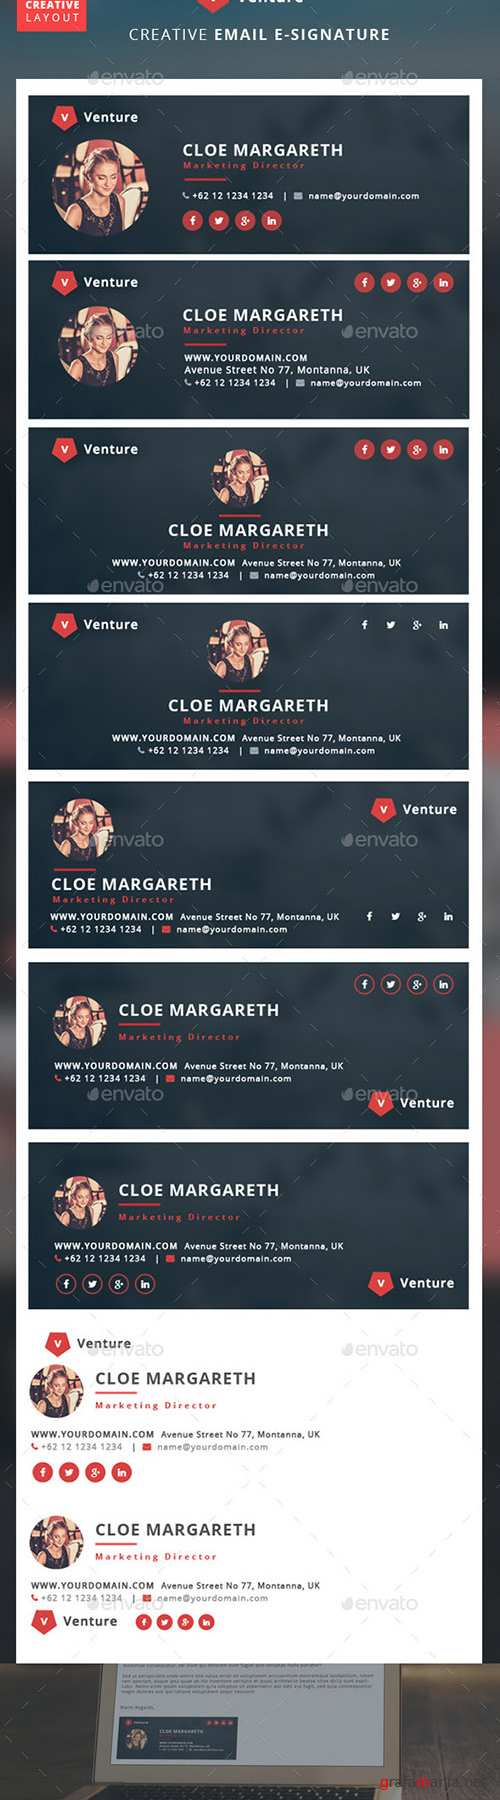 GraphicRiver - Creative E-Signature - Venture 10305103